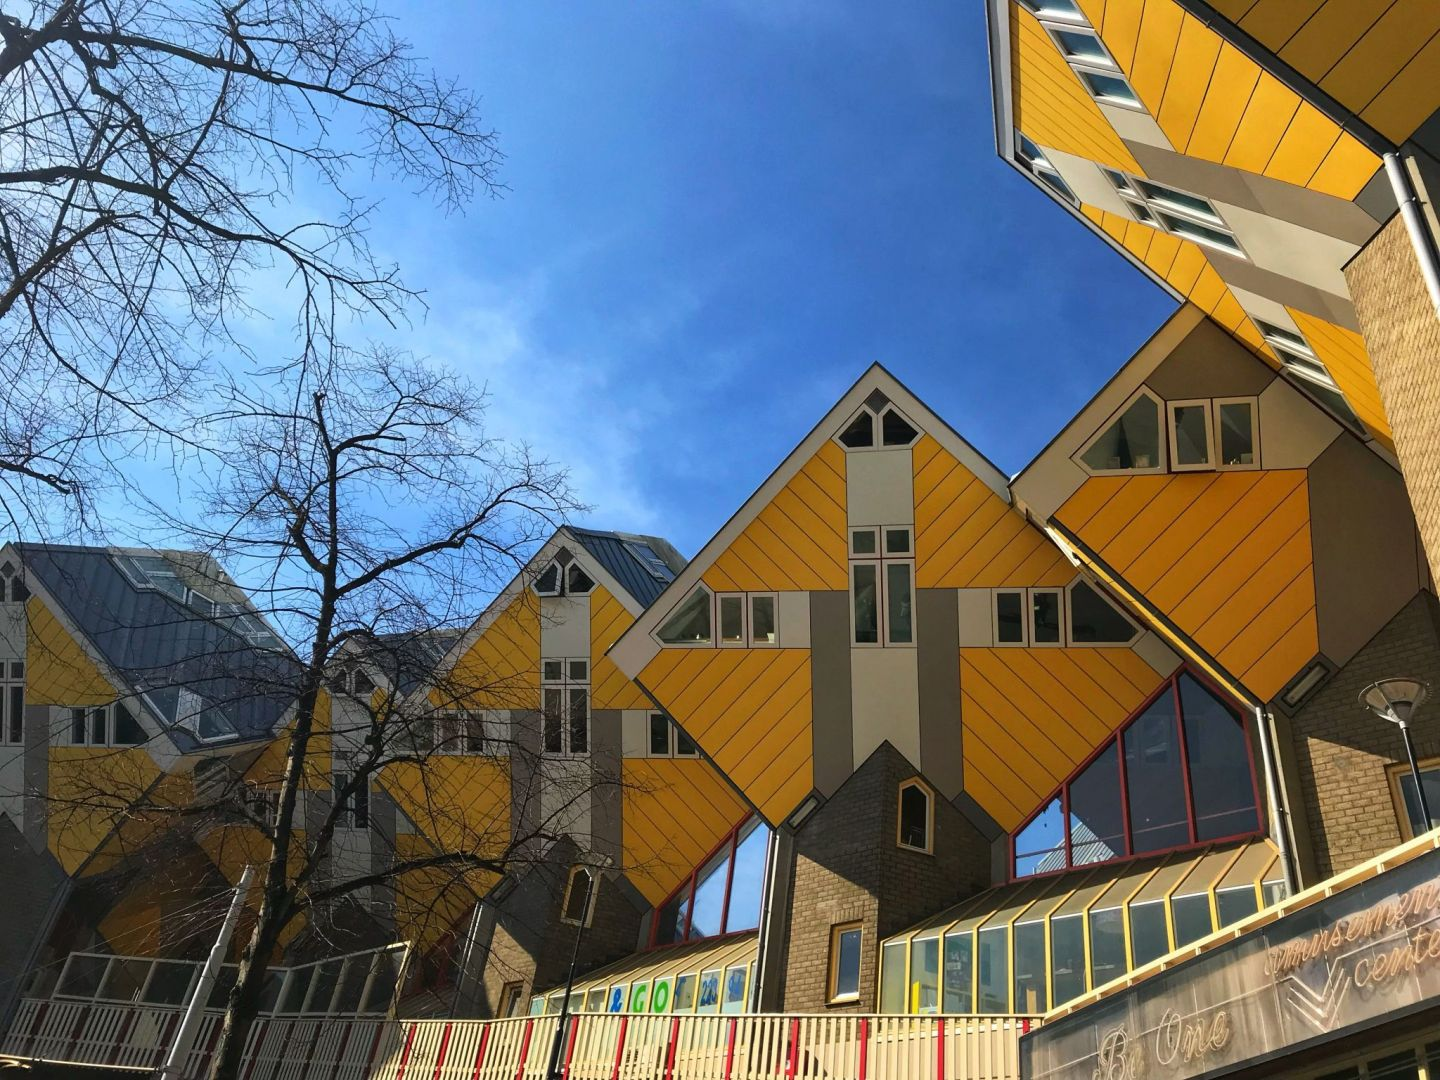 Cube Houses represent trees and collectively a forest